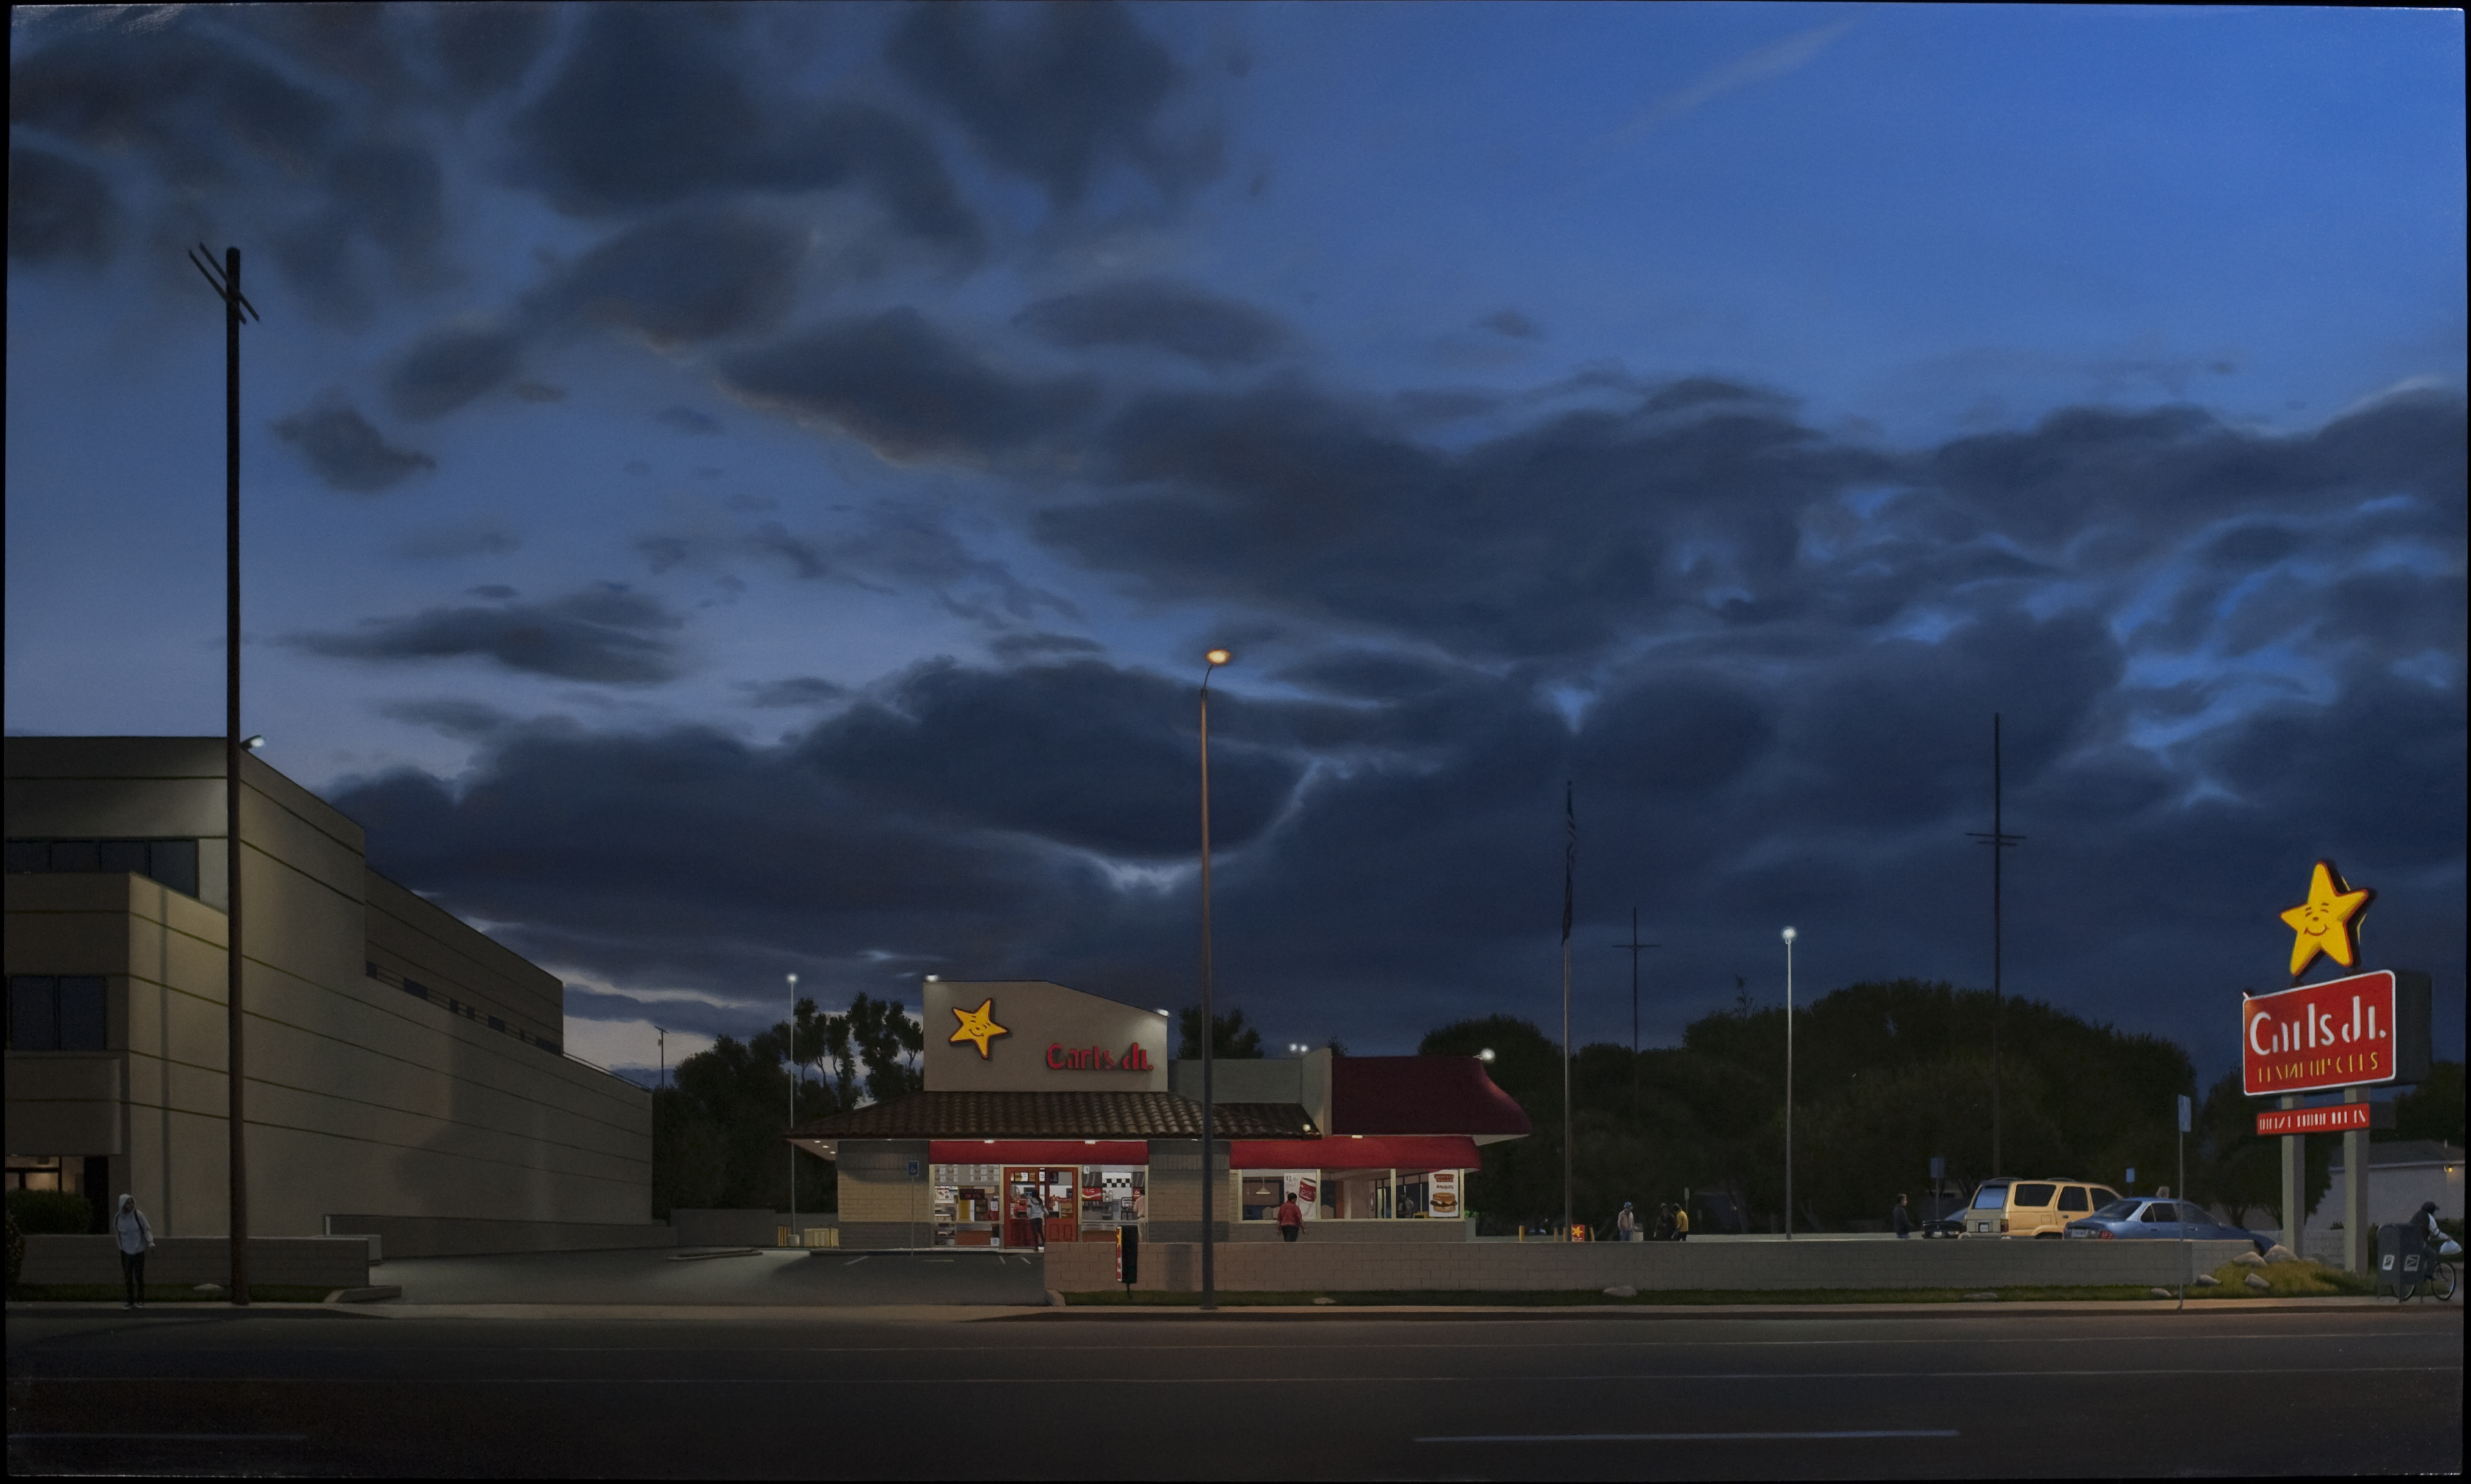 Marc Trujillo, 6457 Sepulveda Boulevard, 2011, oil on polyester. Courtesy of the artist